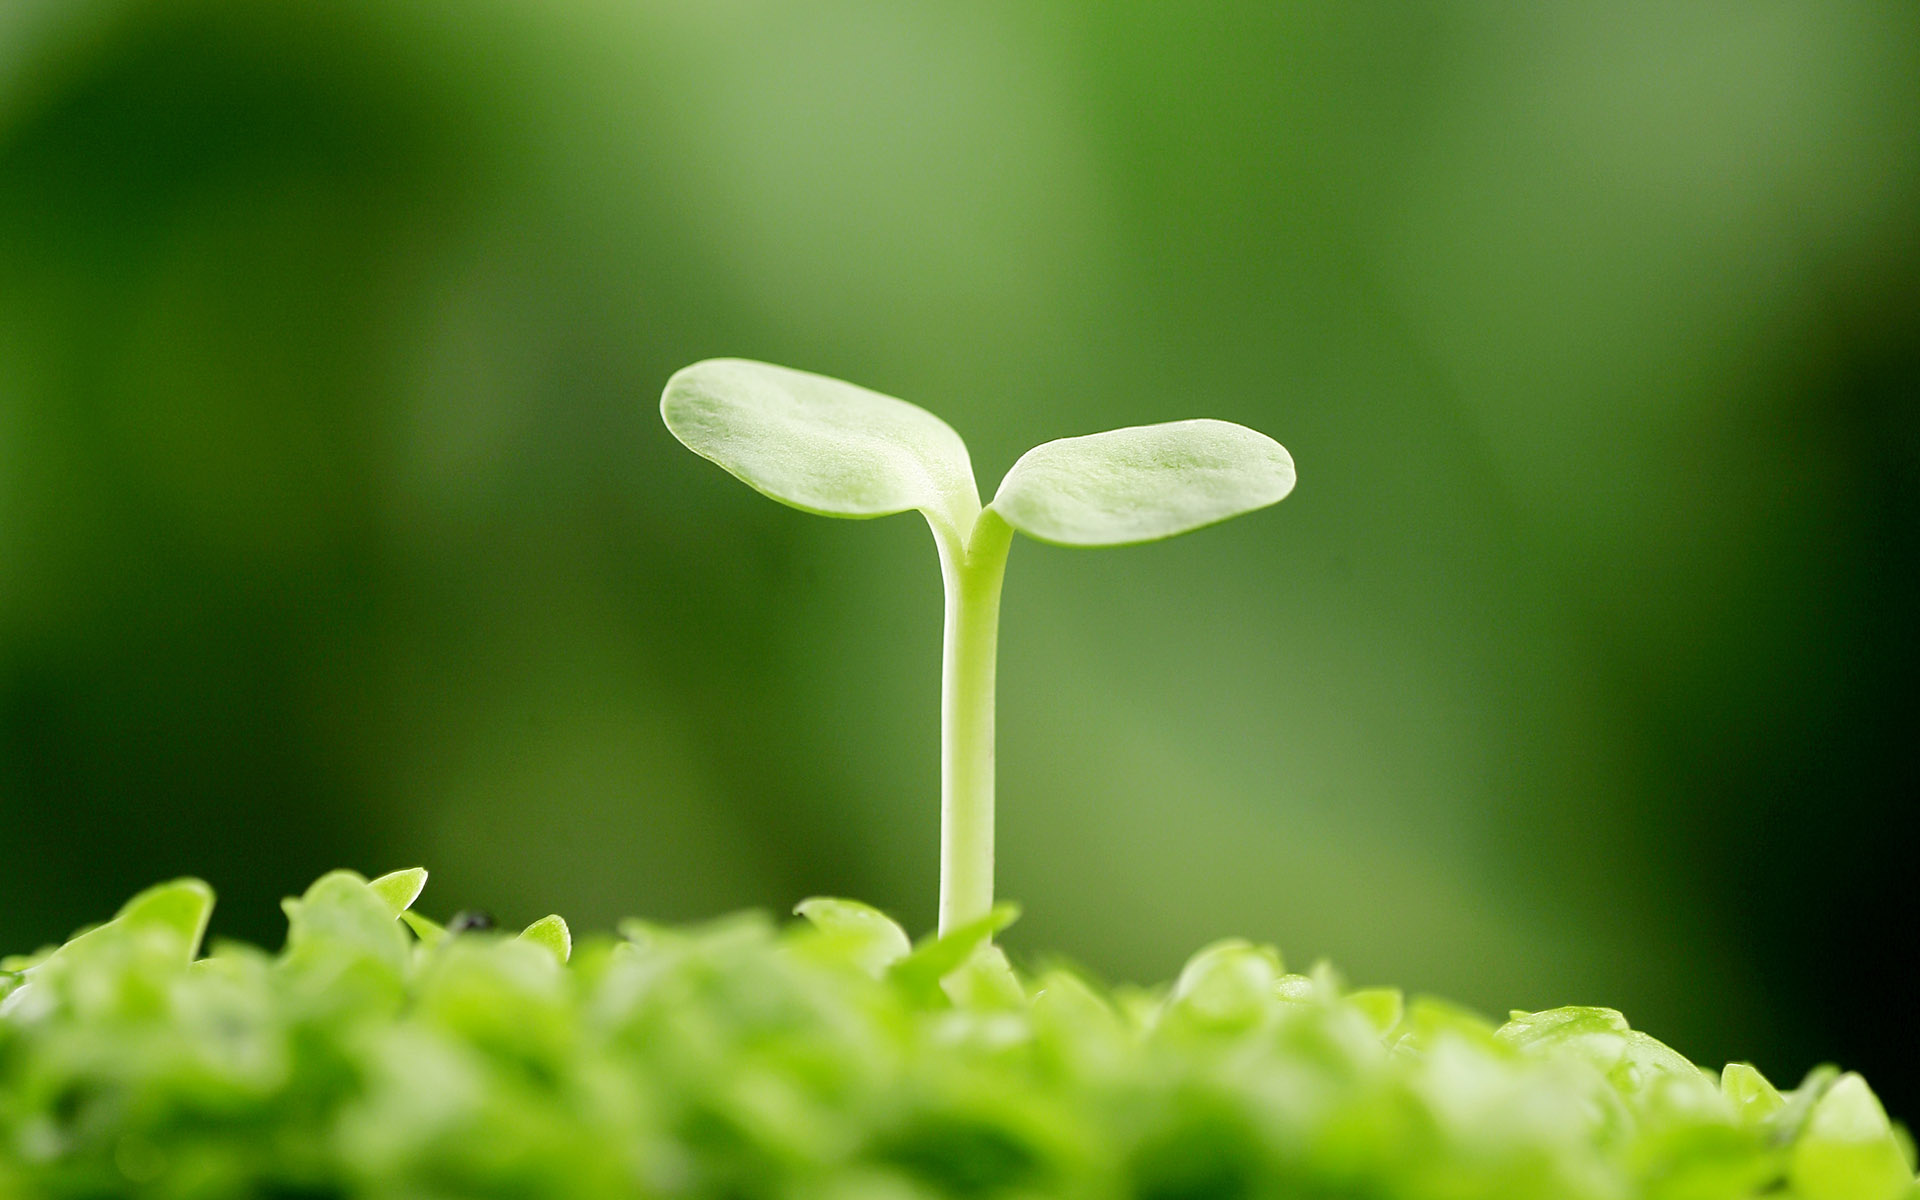 Sprouts leaves 3898